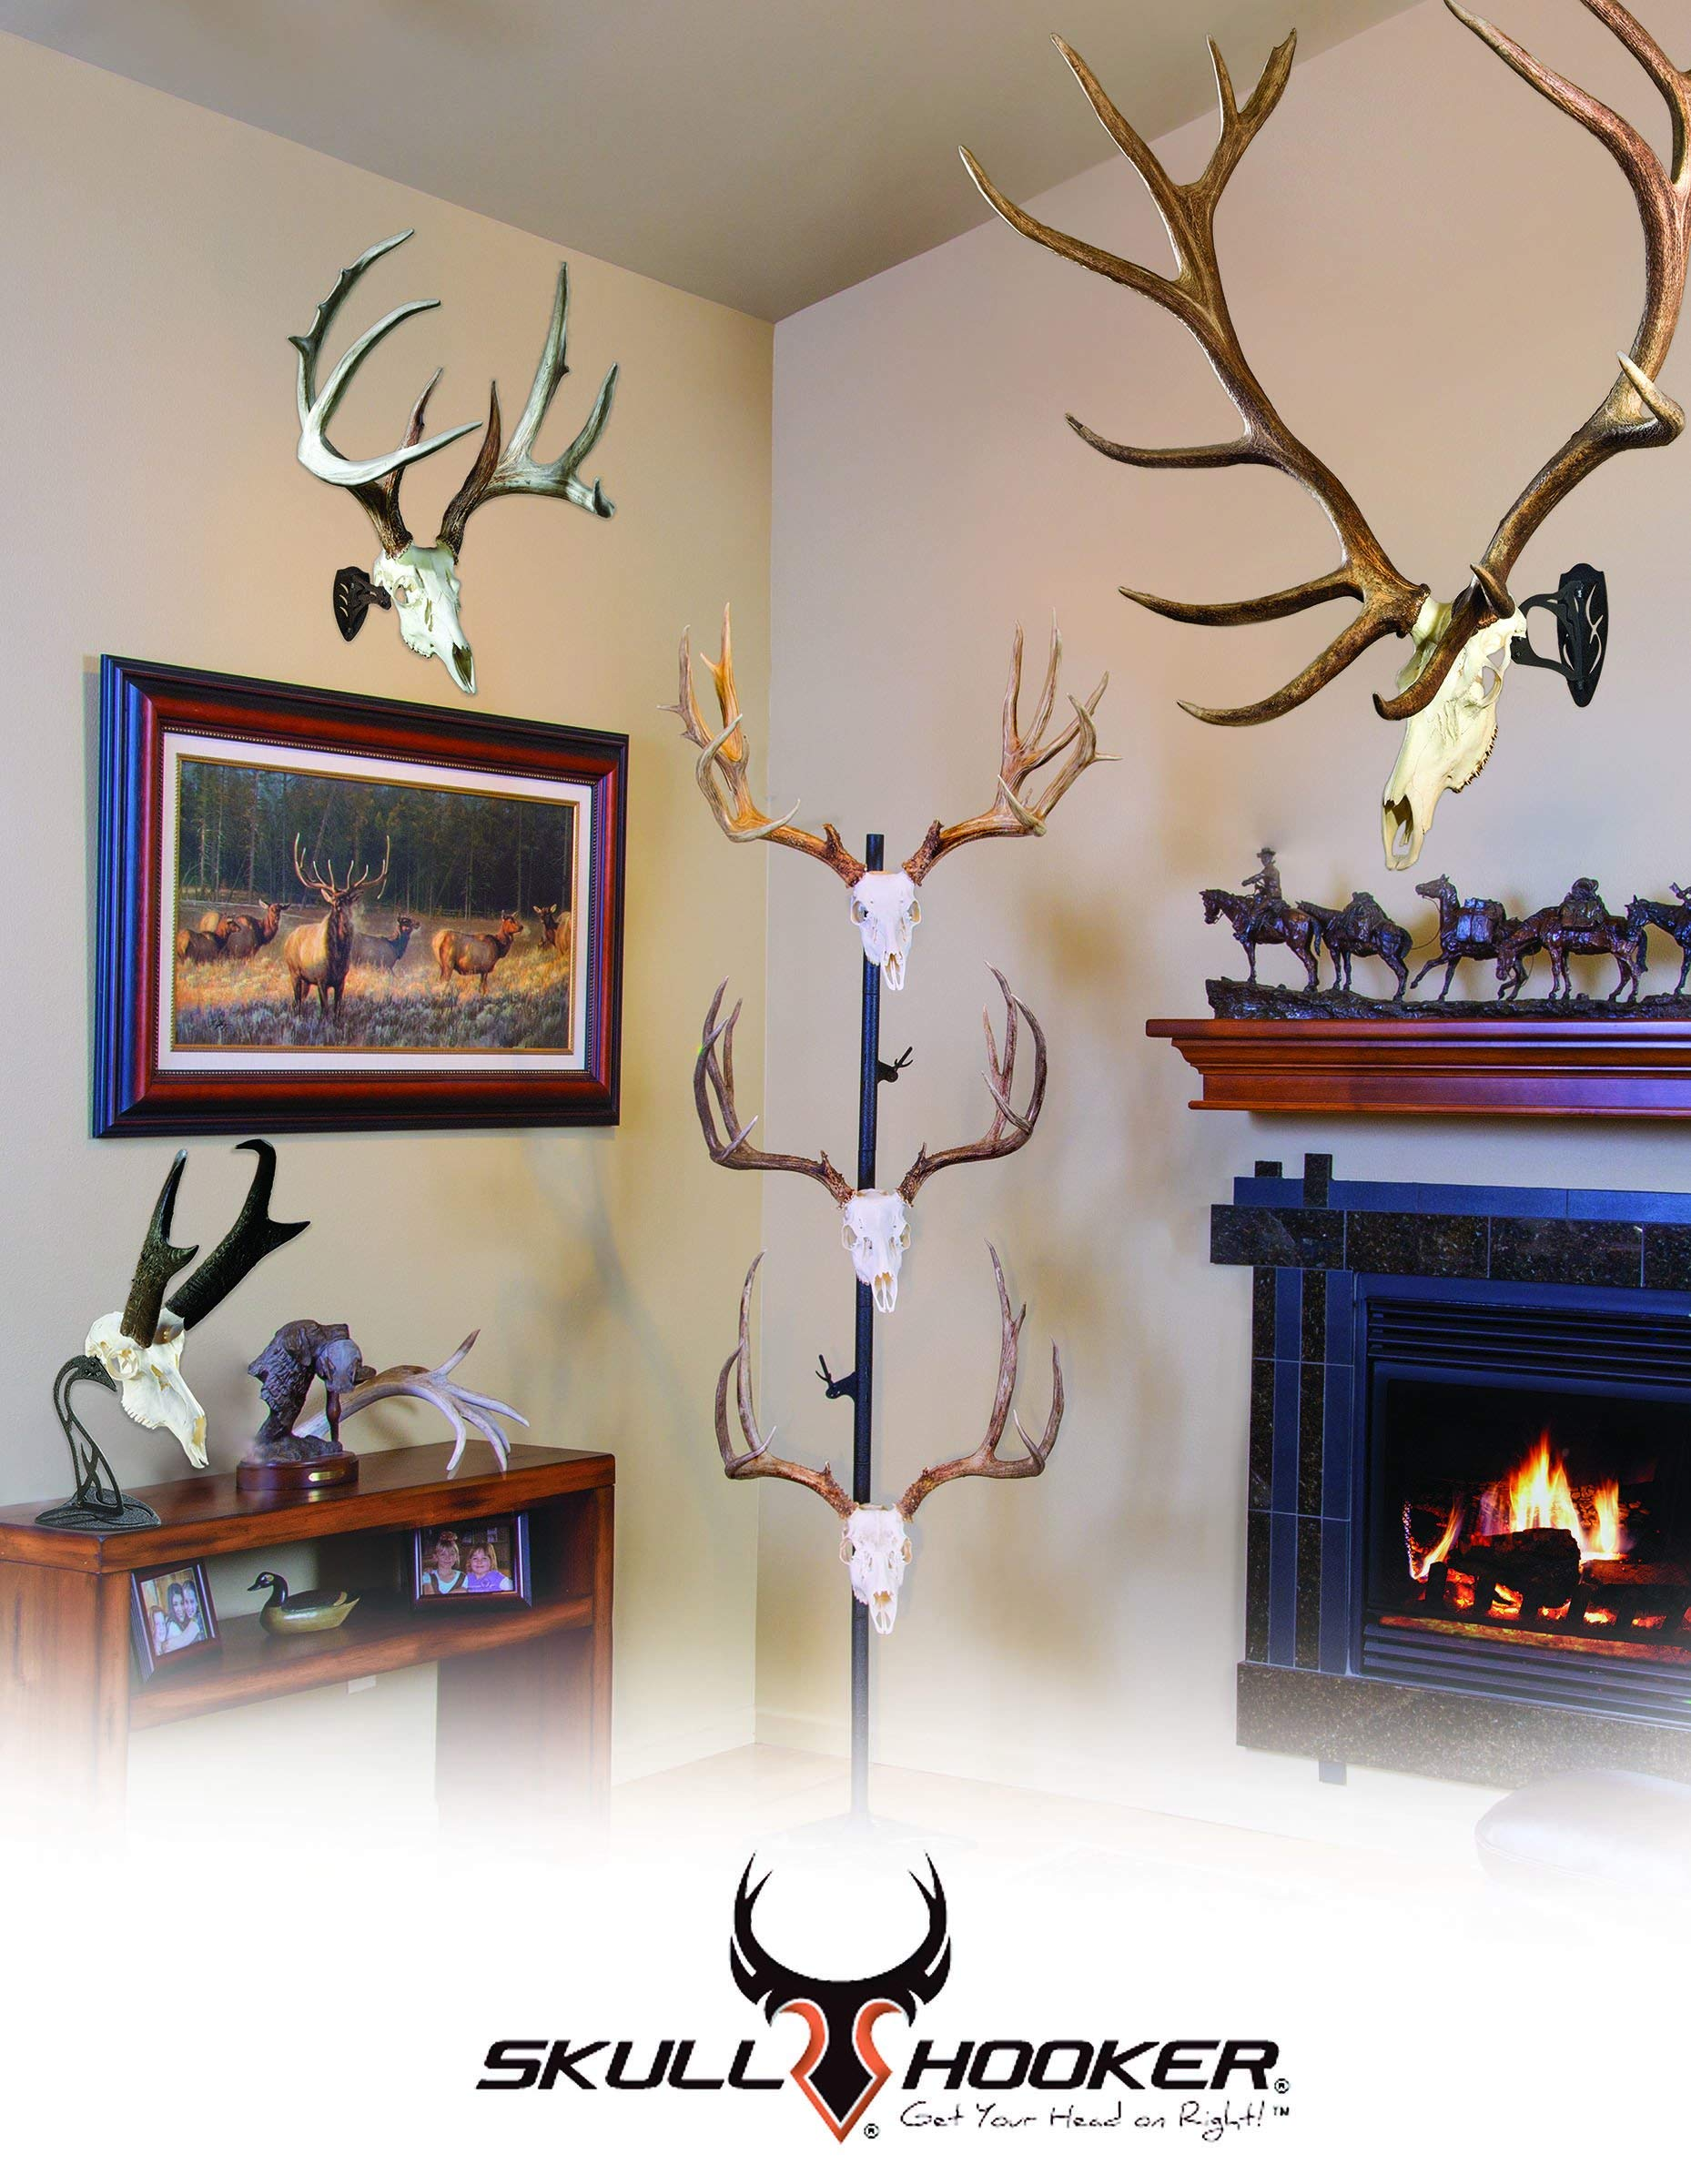 Skull Hooker Trophy Tree European Trophy Mount - Hang up to 5 Taxidermy Deer Antlers and other Skulls for Display - Graphite Black by Skull Hooker (Image #4)